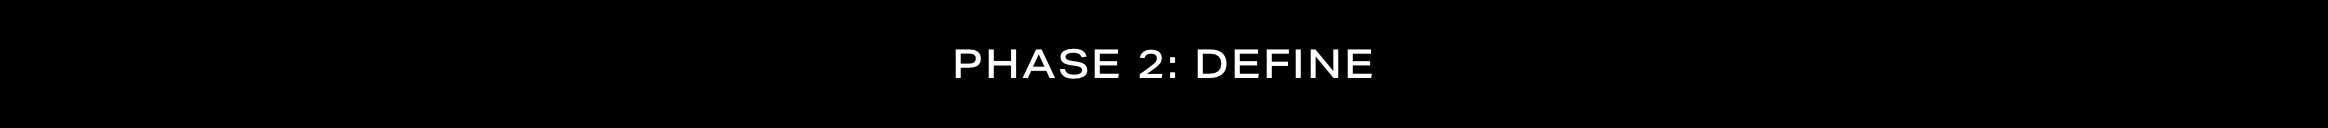 PHASE 2-DEFINE.png